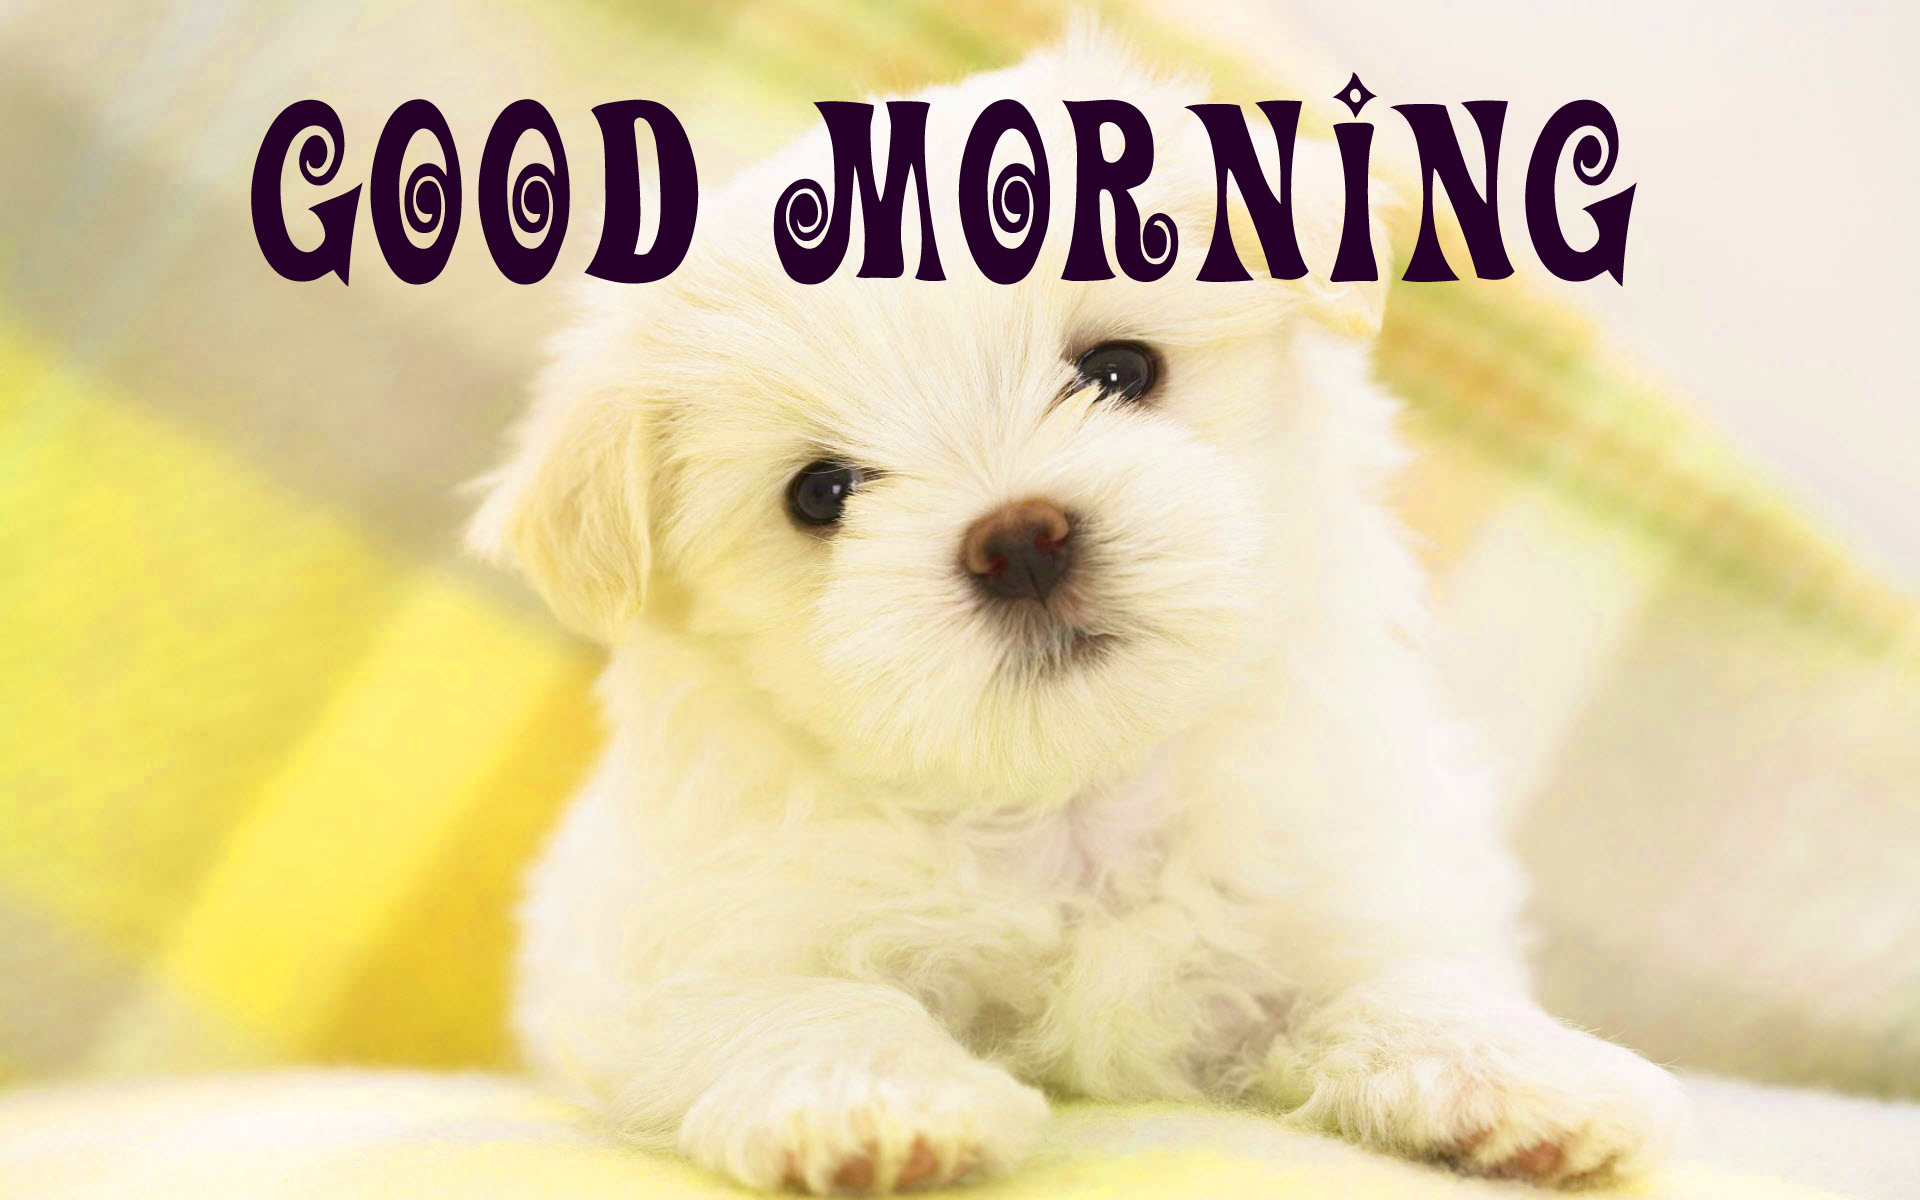 Good morning wishes for puppy lover Images Pic Photo Download